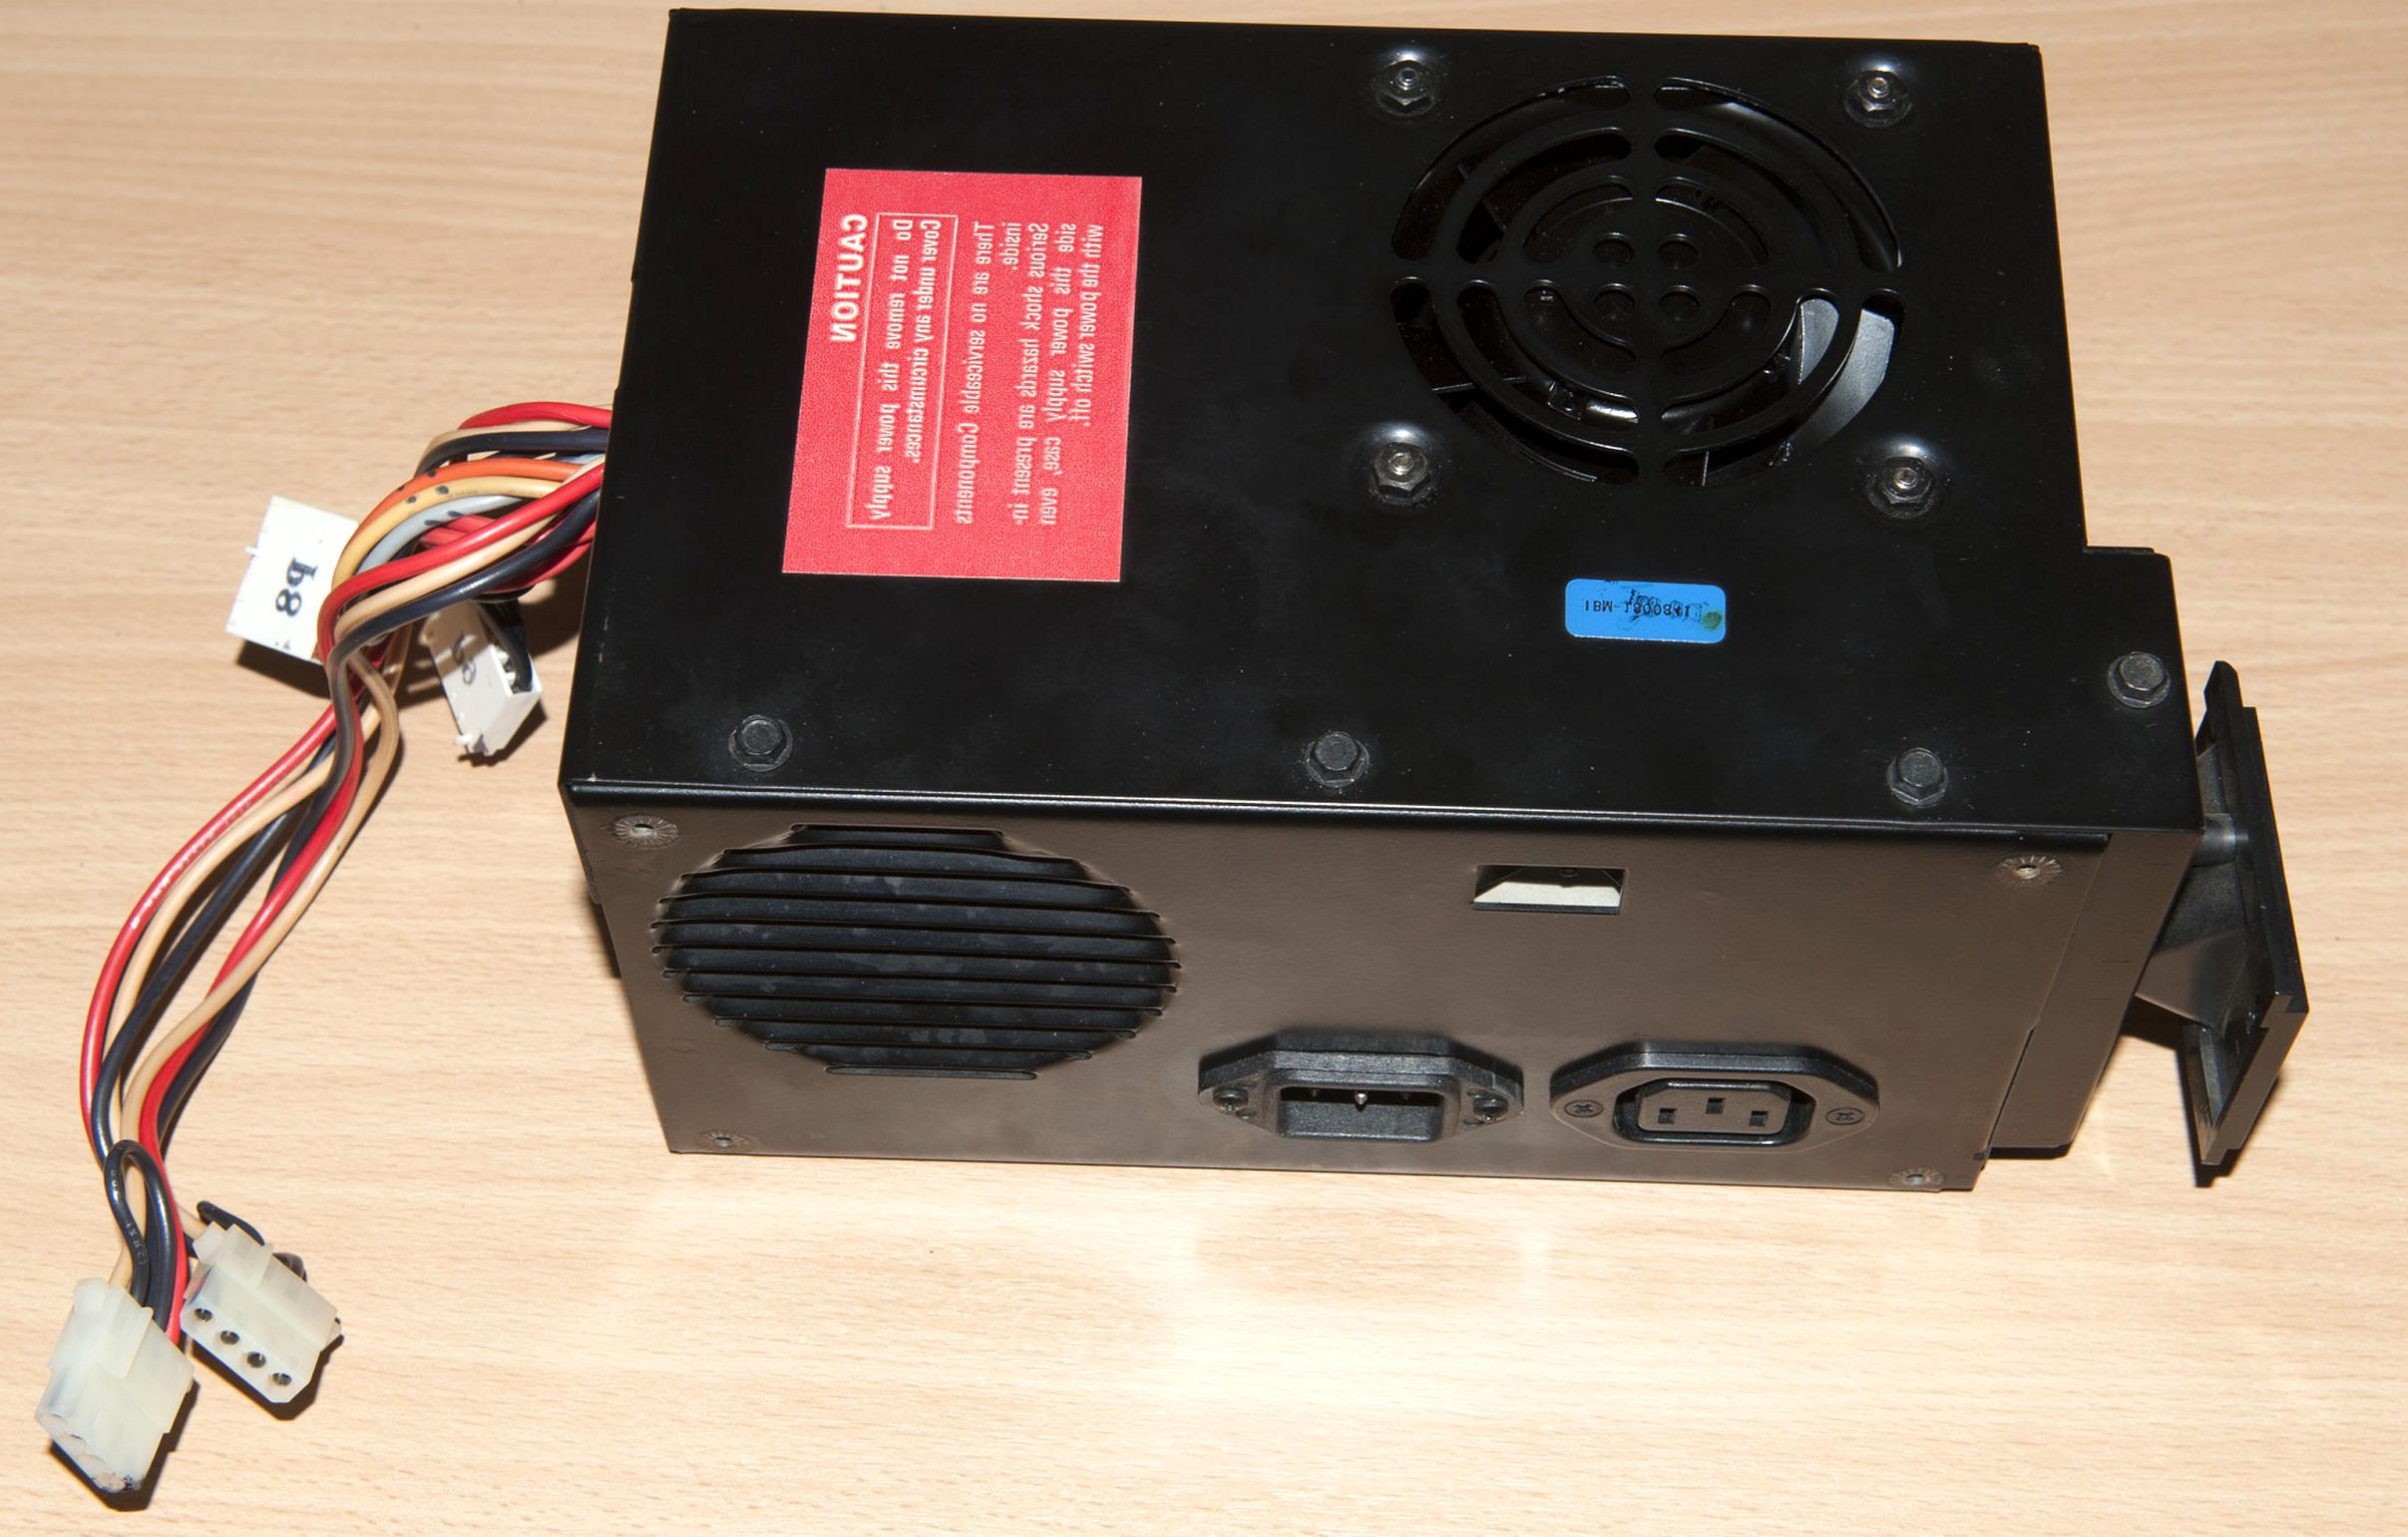 ibm psu for sale